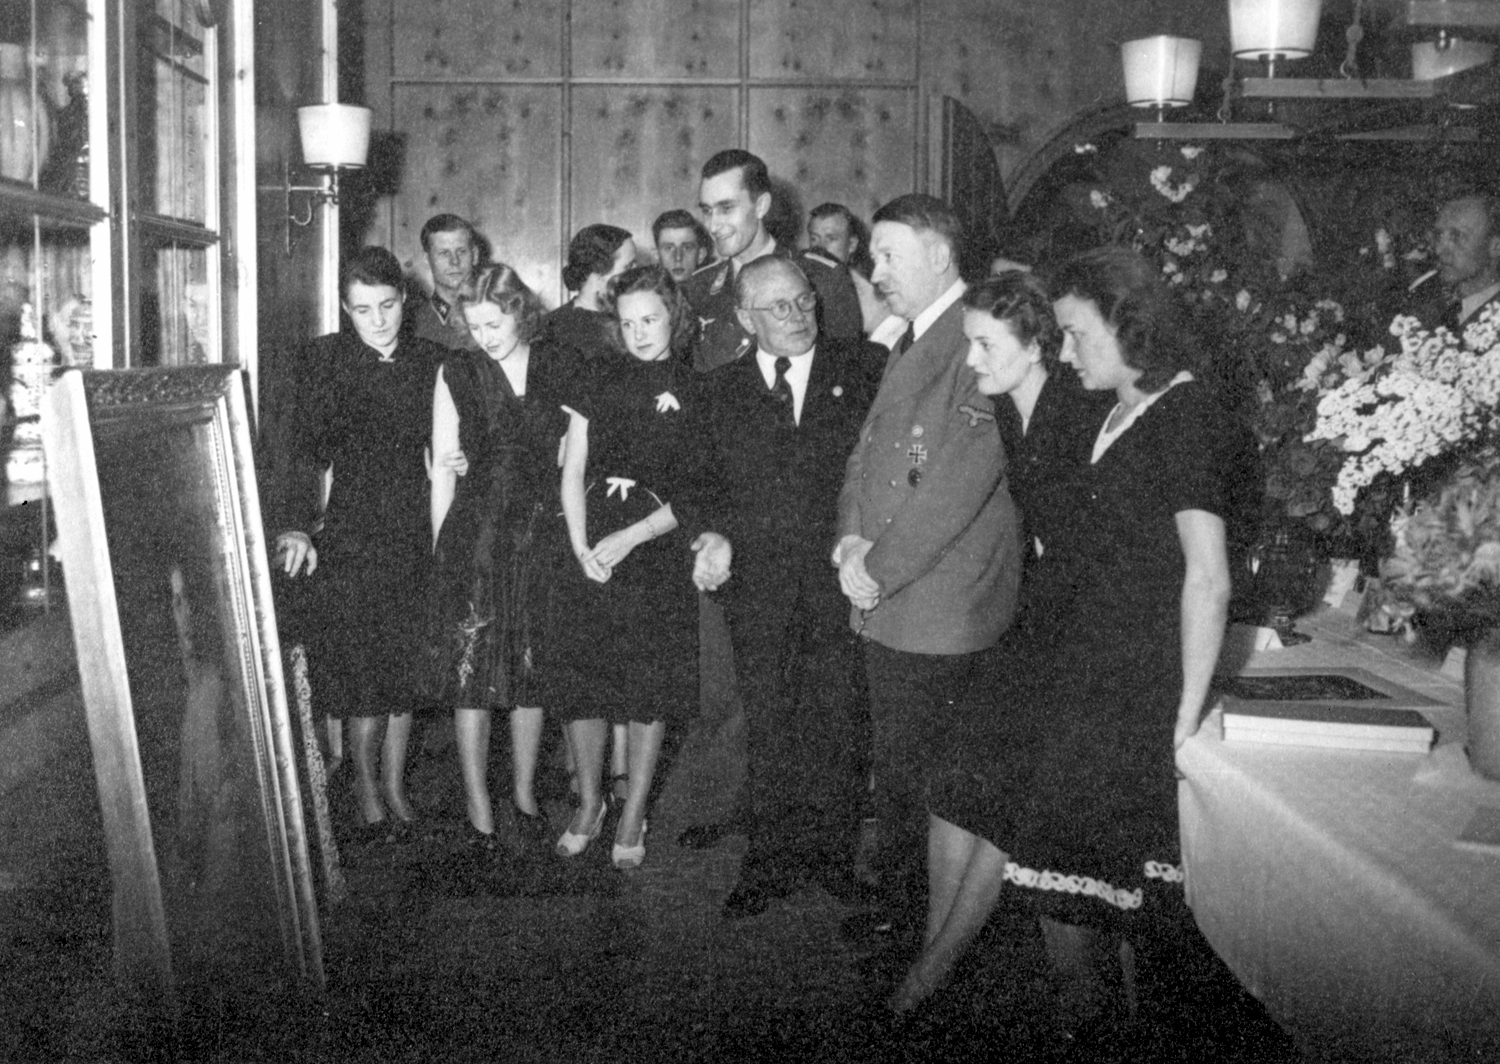 Adolf Hitler and Eva Braun look at a gift painting on the occasion of the 54th birthday of the Führer, from Eva Braun's albums